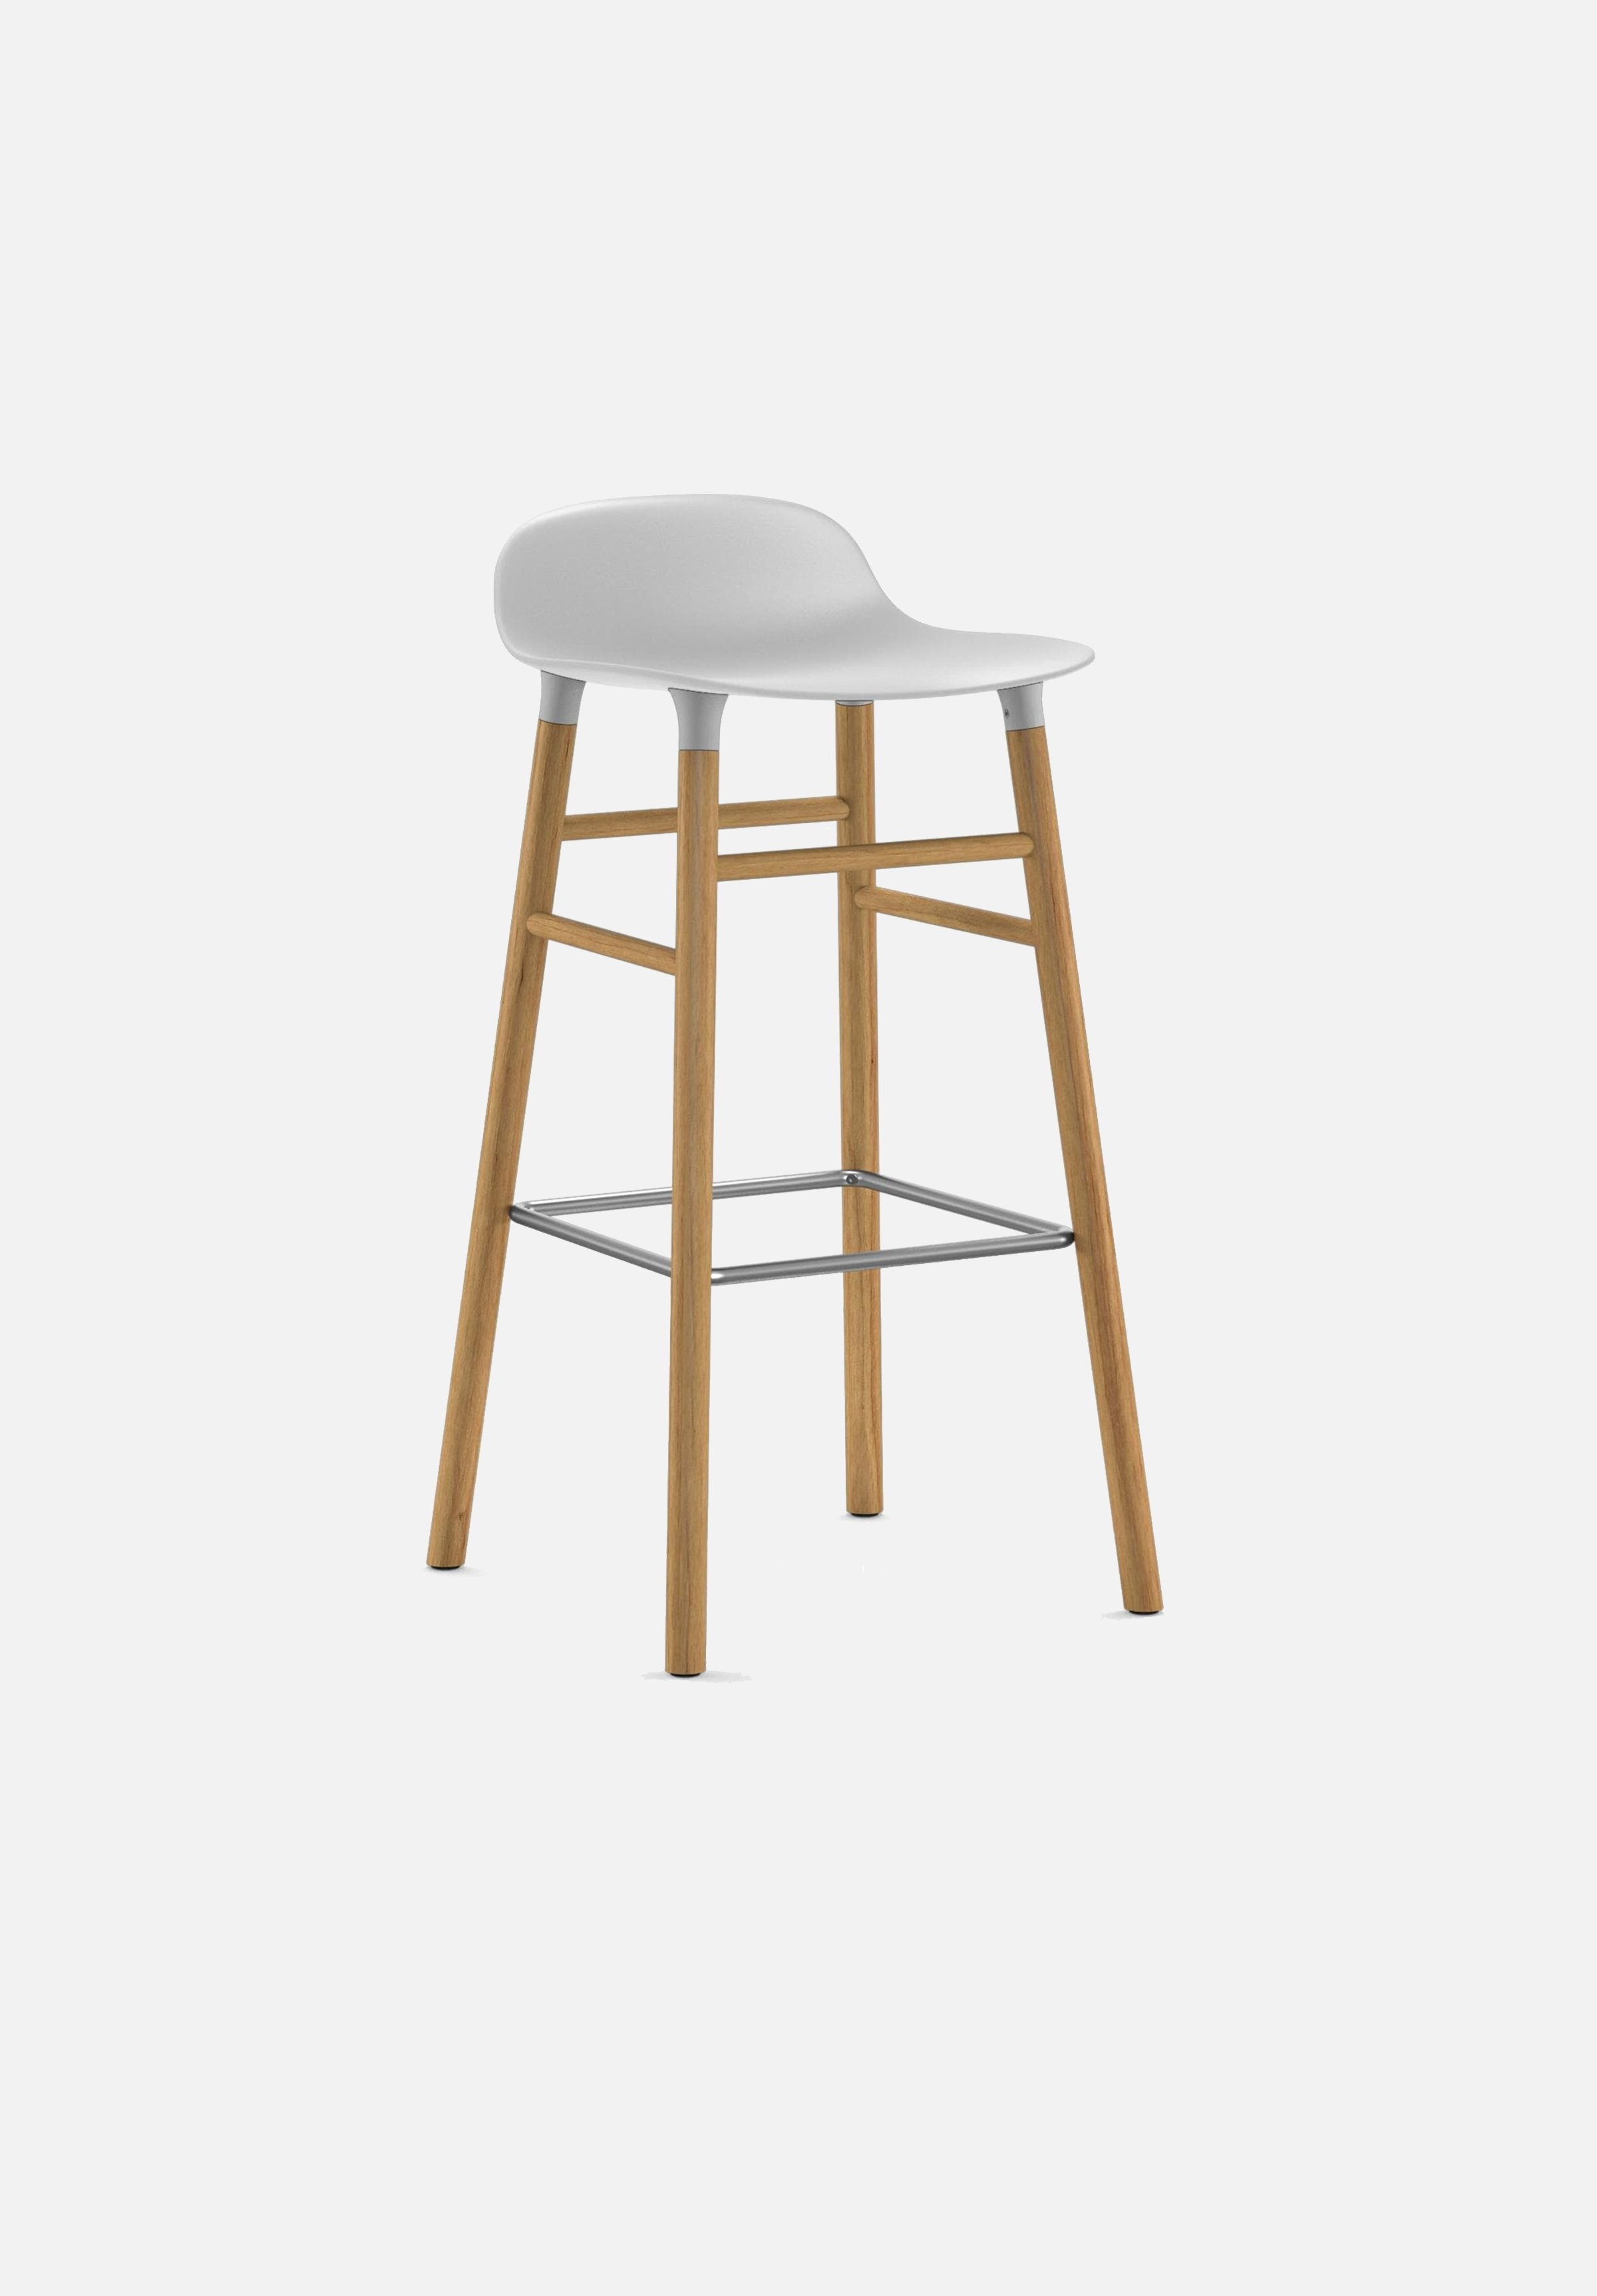 Form Stool — 75cm-Simon Legald-Normann Copenhagen-White-Solid Oak-Average-canada-design-store-danish-denmark-furniture-interior